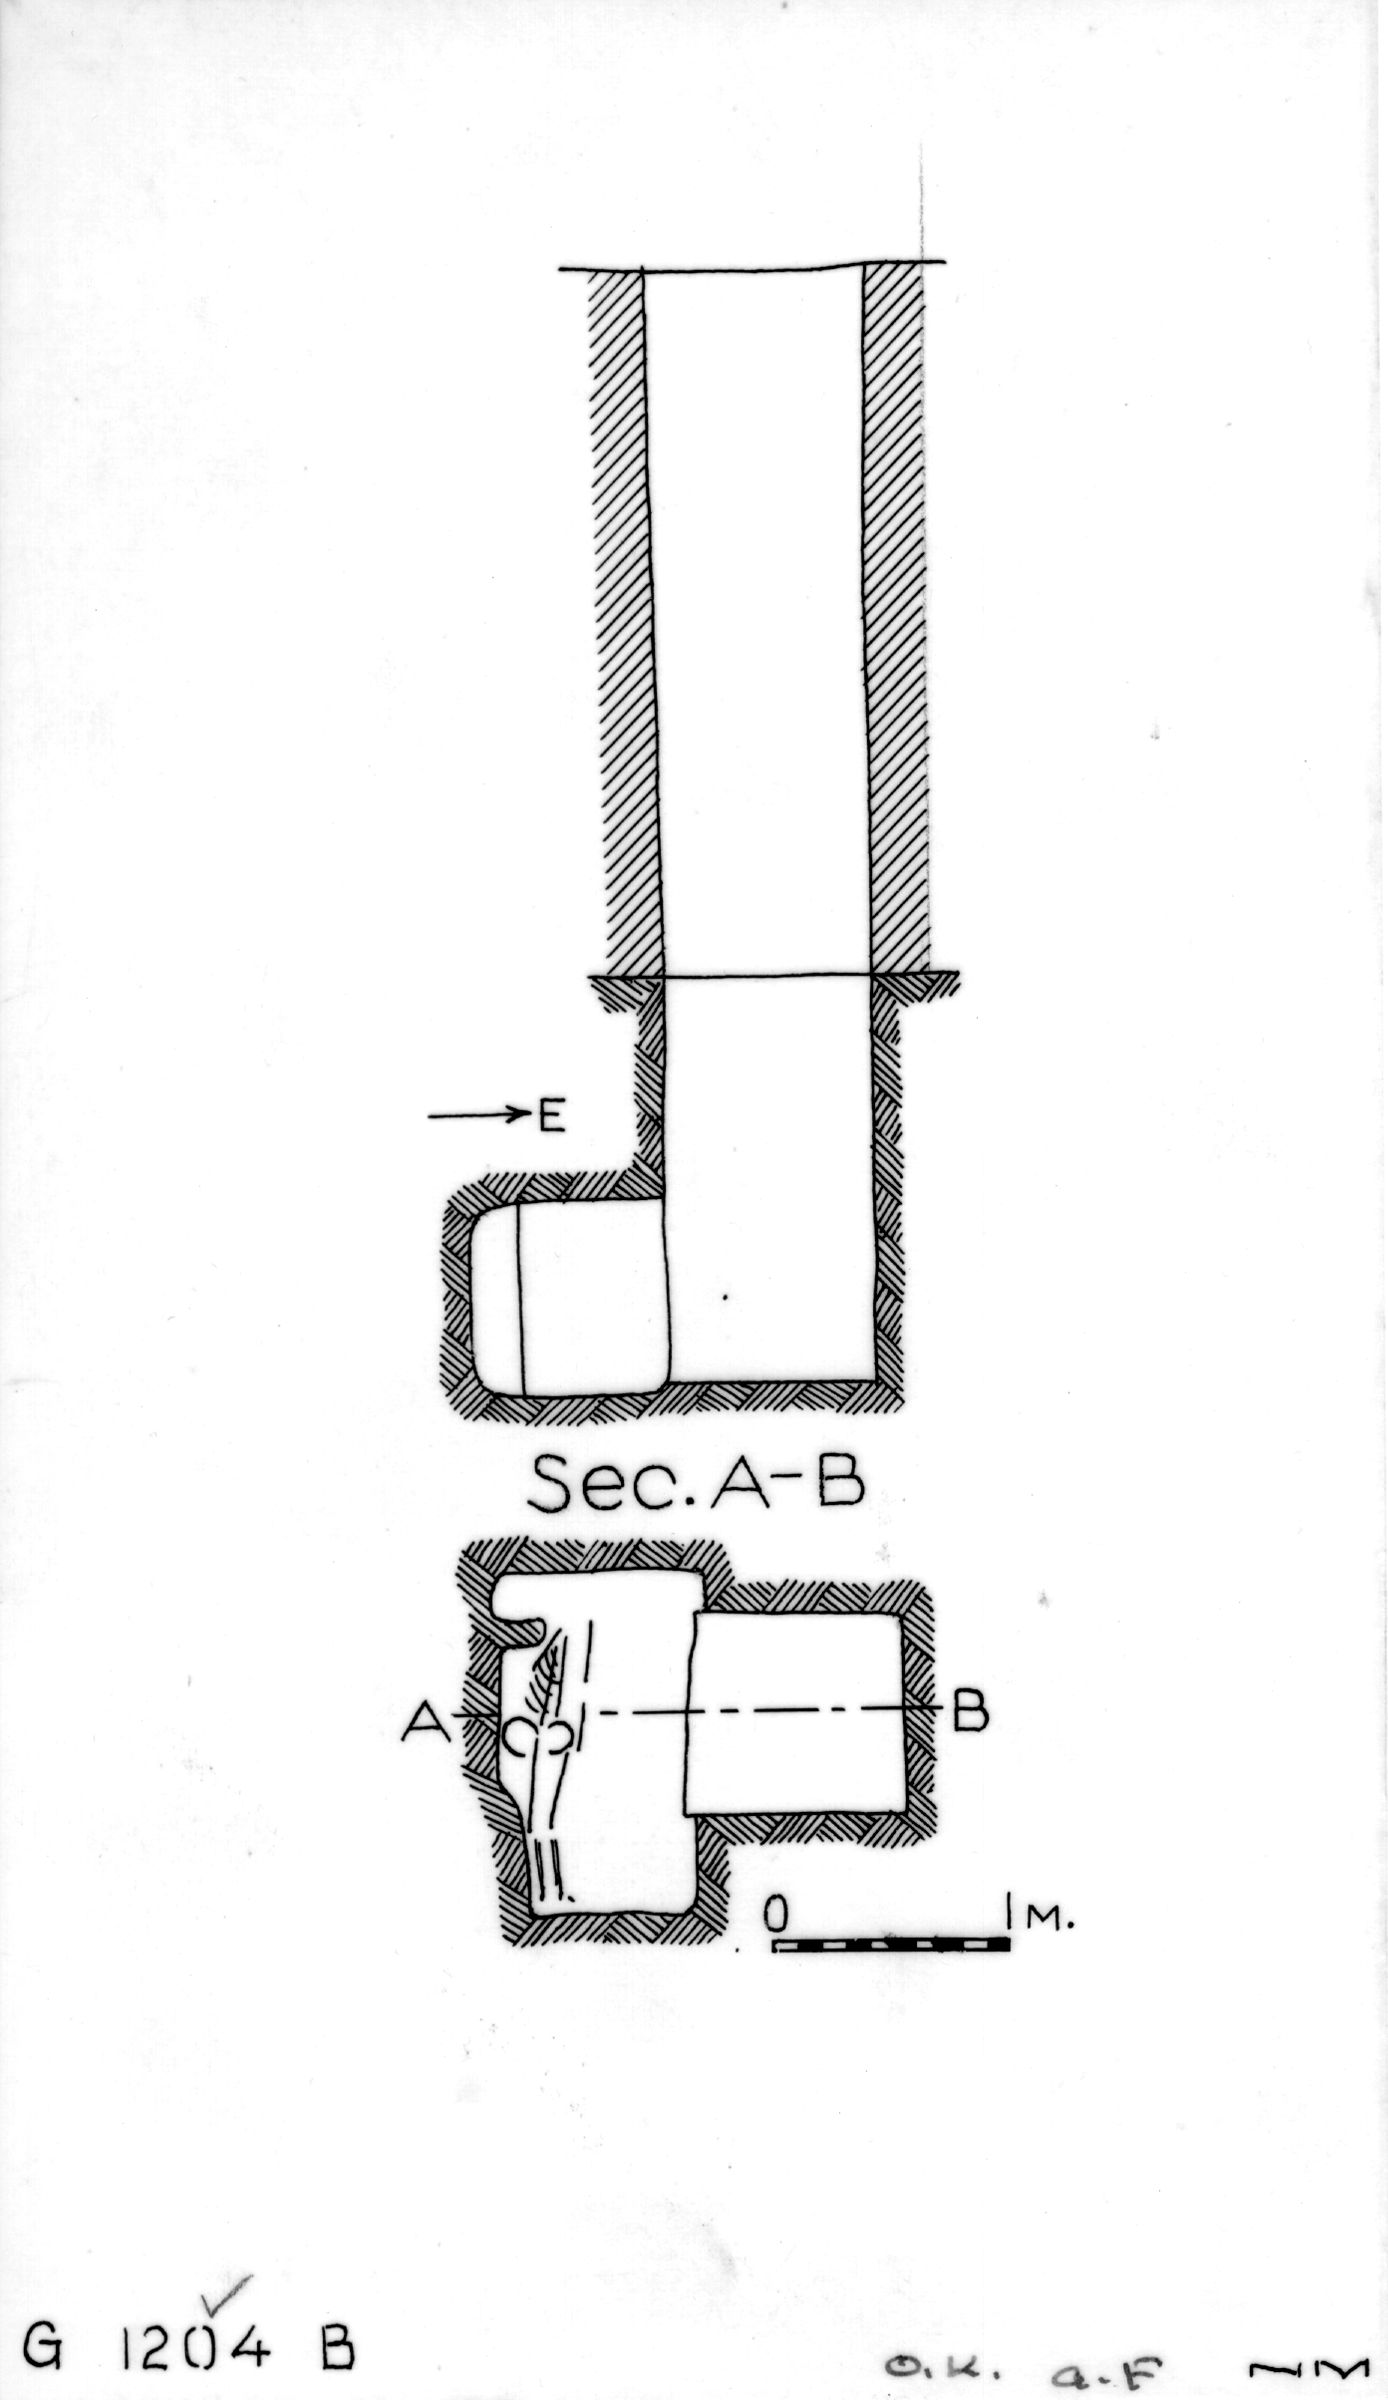 Maps and plans: G 1204, Shaft B